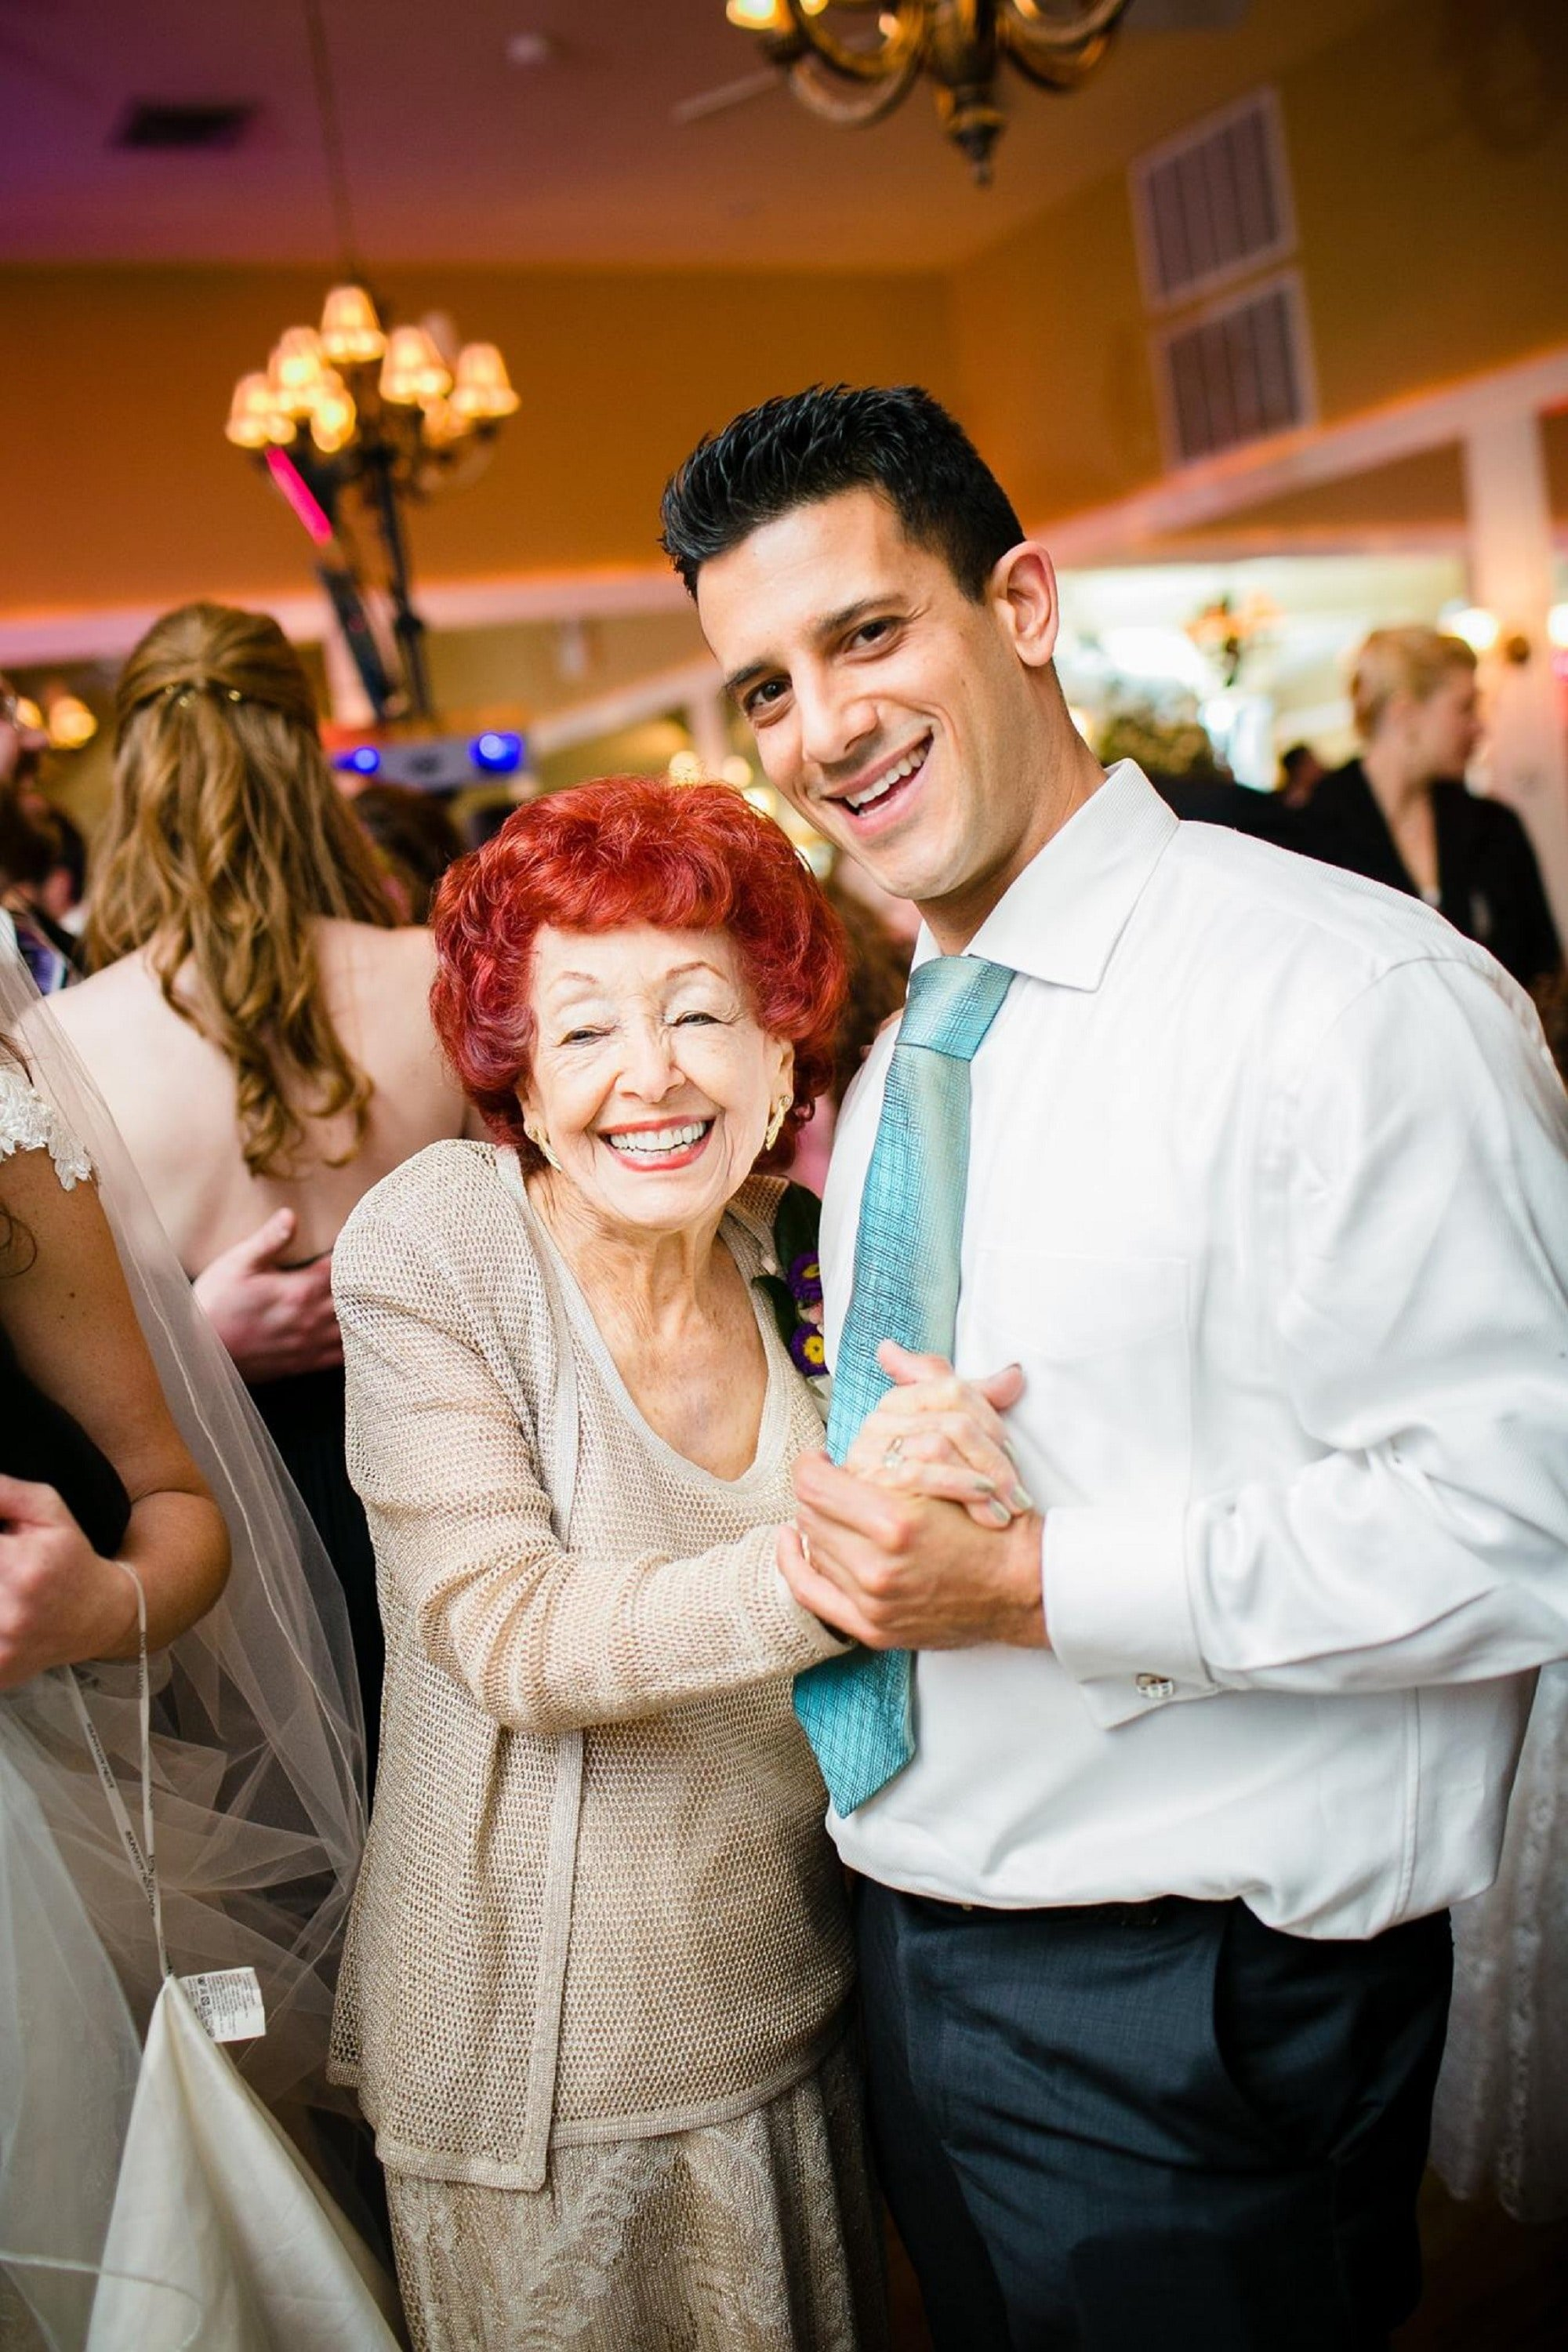 A young man and his grandmother dancing. | Source: Unsplash